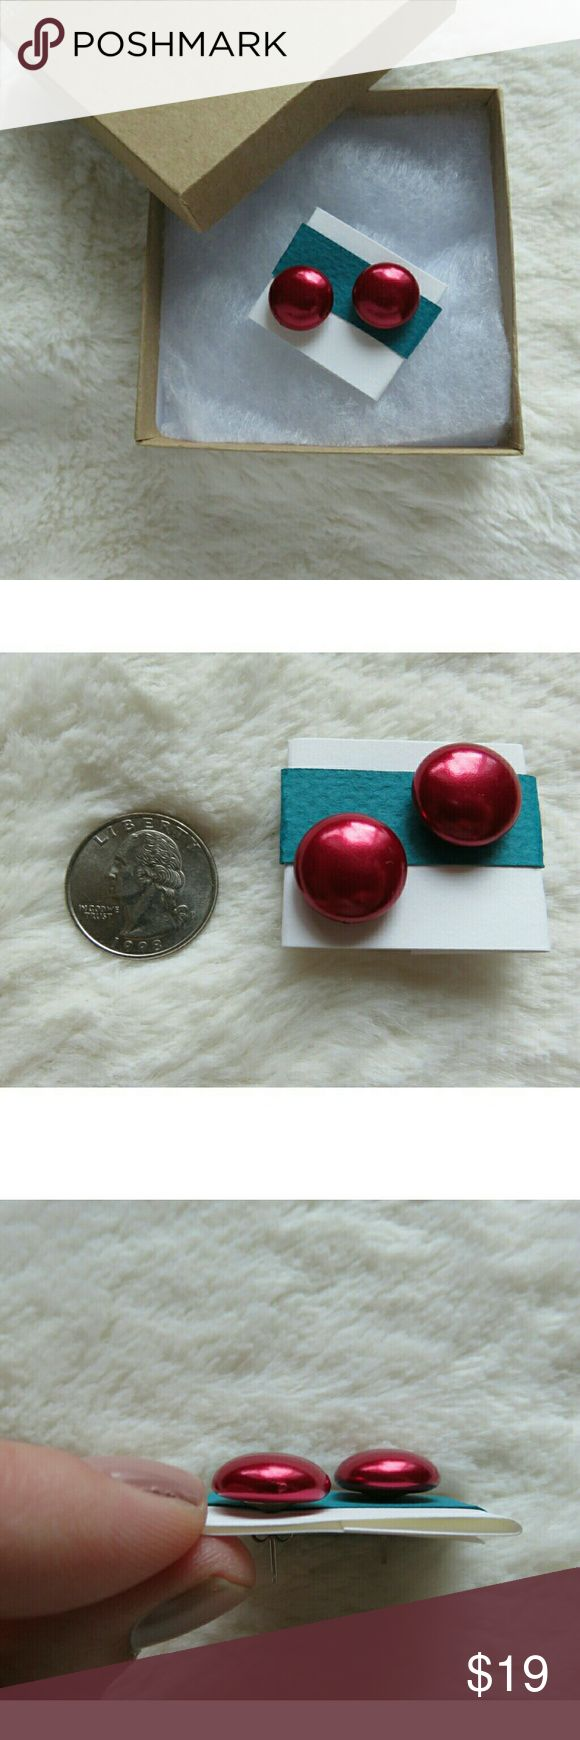 Vintage Wine Red Candy Button Upcycled Earrings Pearly wine burgundy red with matching silver tone backs! Have been cleaned & sanitized with alcohol towelettes. Upcycled vintage style earrings, comes as shown on recycled paper backing and in gift box. Keep for yourself or pair with a Starbucks or Target gift card for the perfect Christmas gift! Packed carefully and shipped fast! Thanks so much, Jen #1050 Vintage Jewelry Earrings